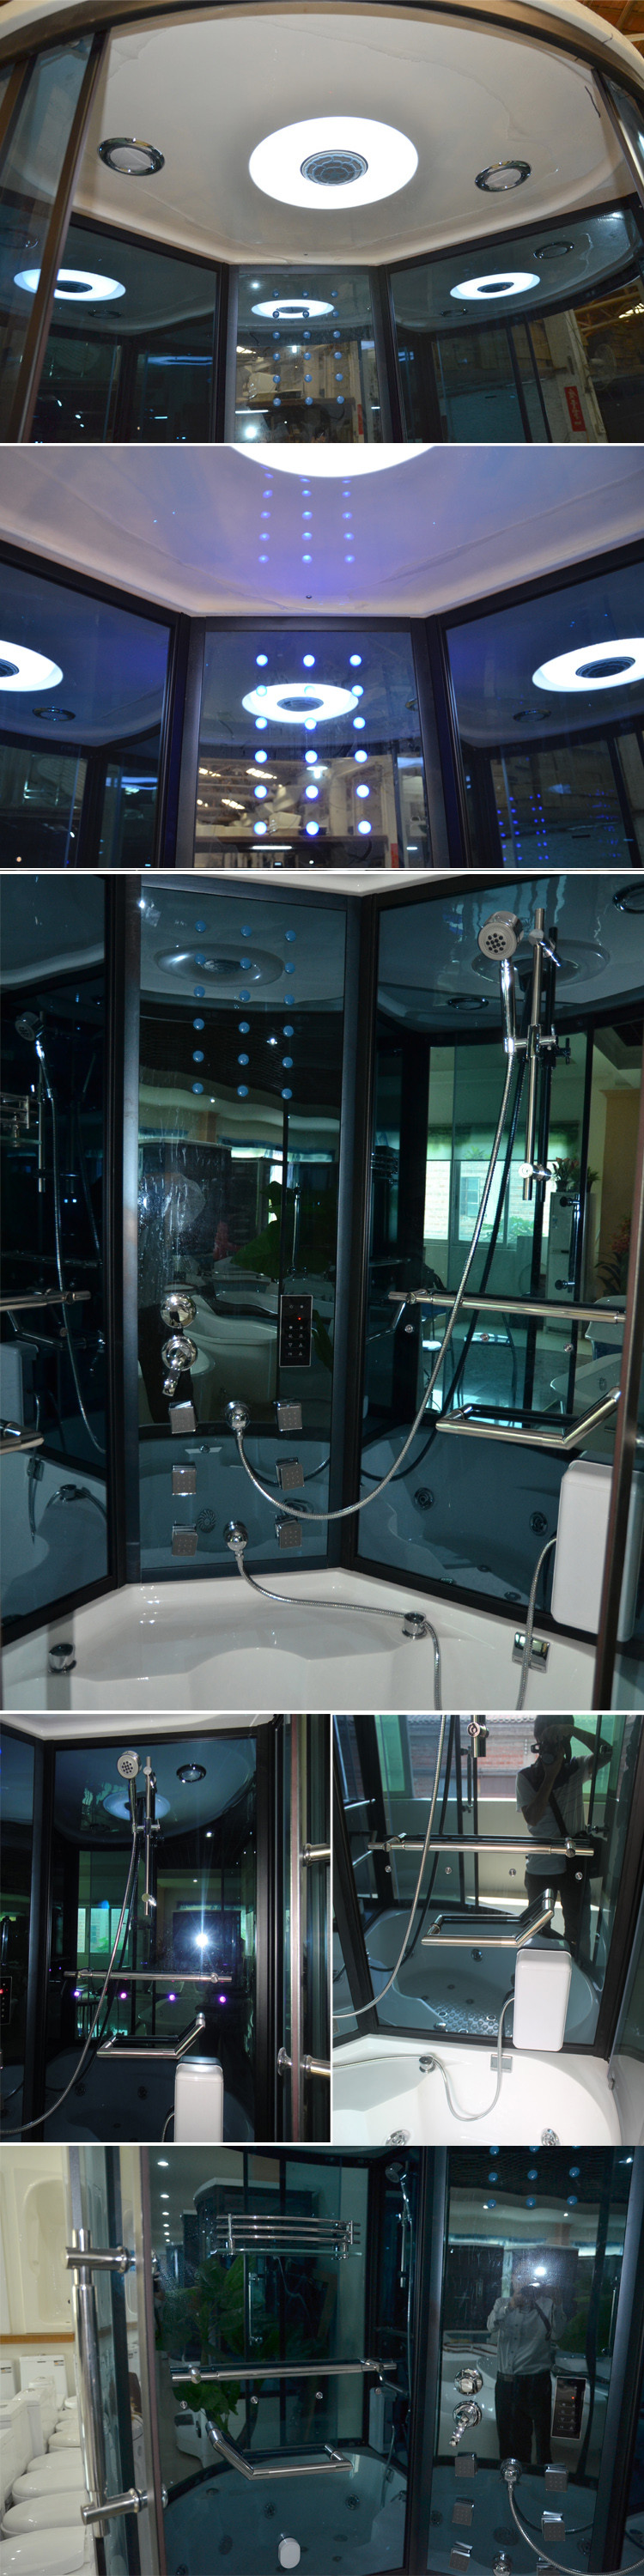 american shower and bath company small bathtub shower